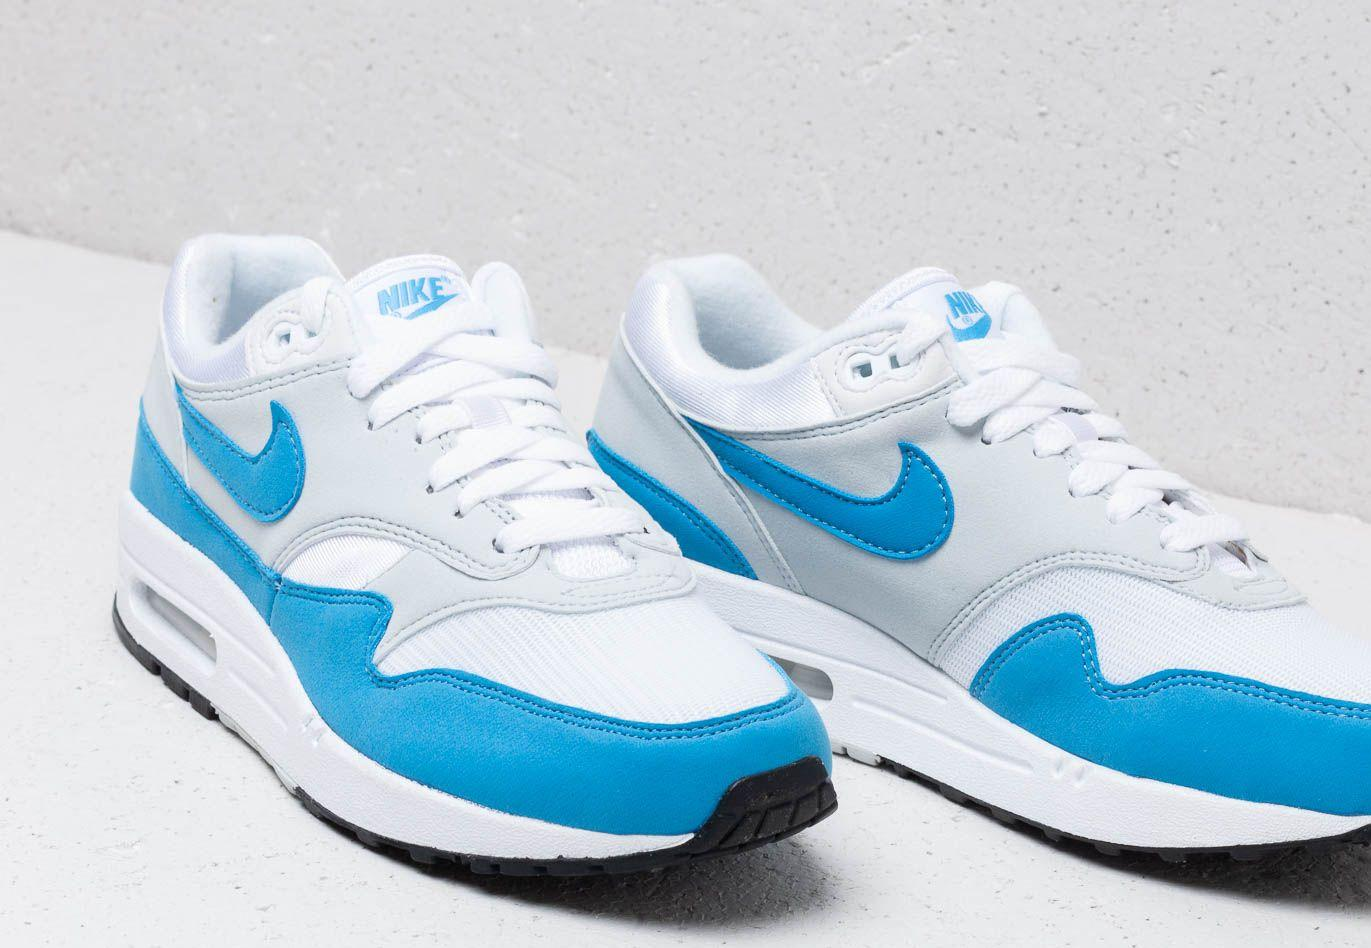 promo code 1bf21 35c07 Nike - W Air Max 1 Essential White  University Blue - Lyst. View fullscreen